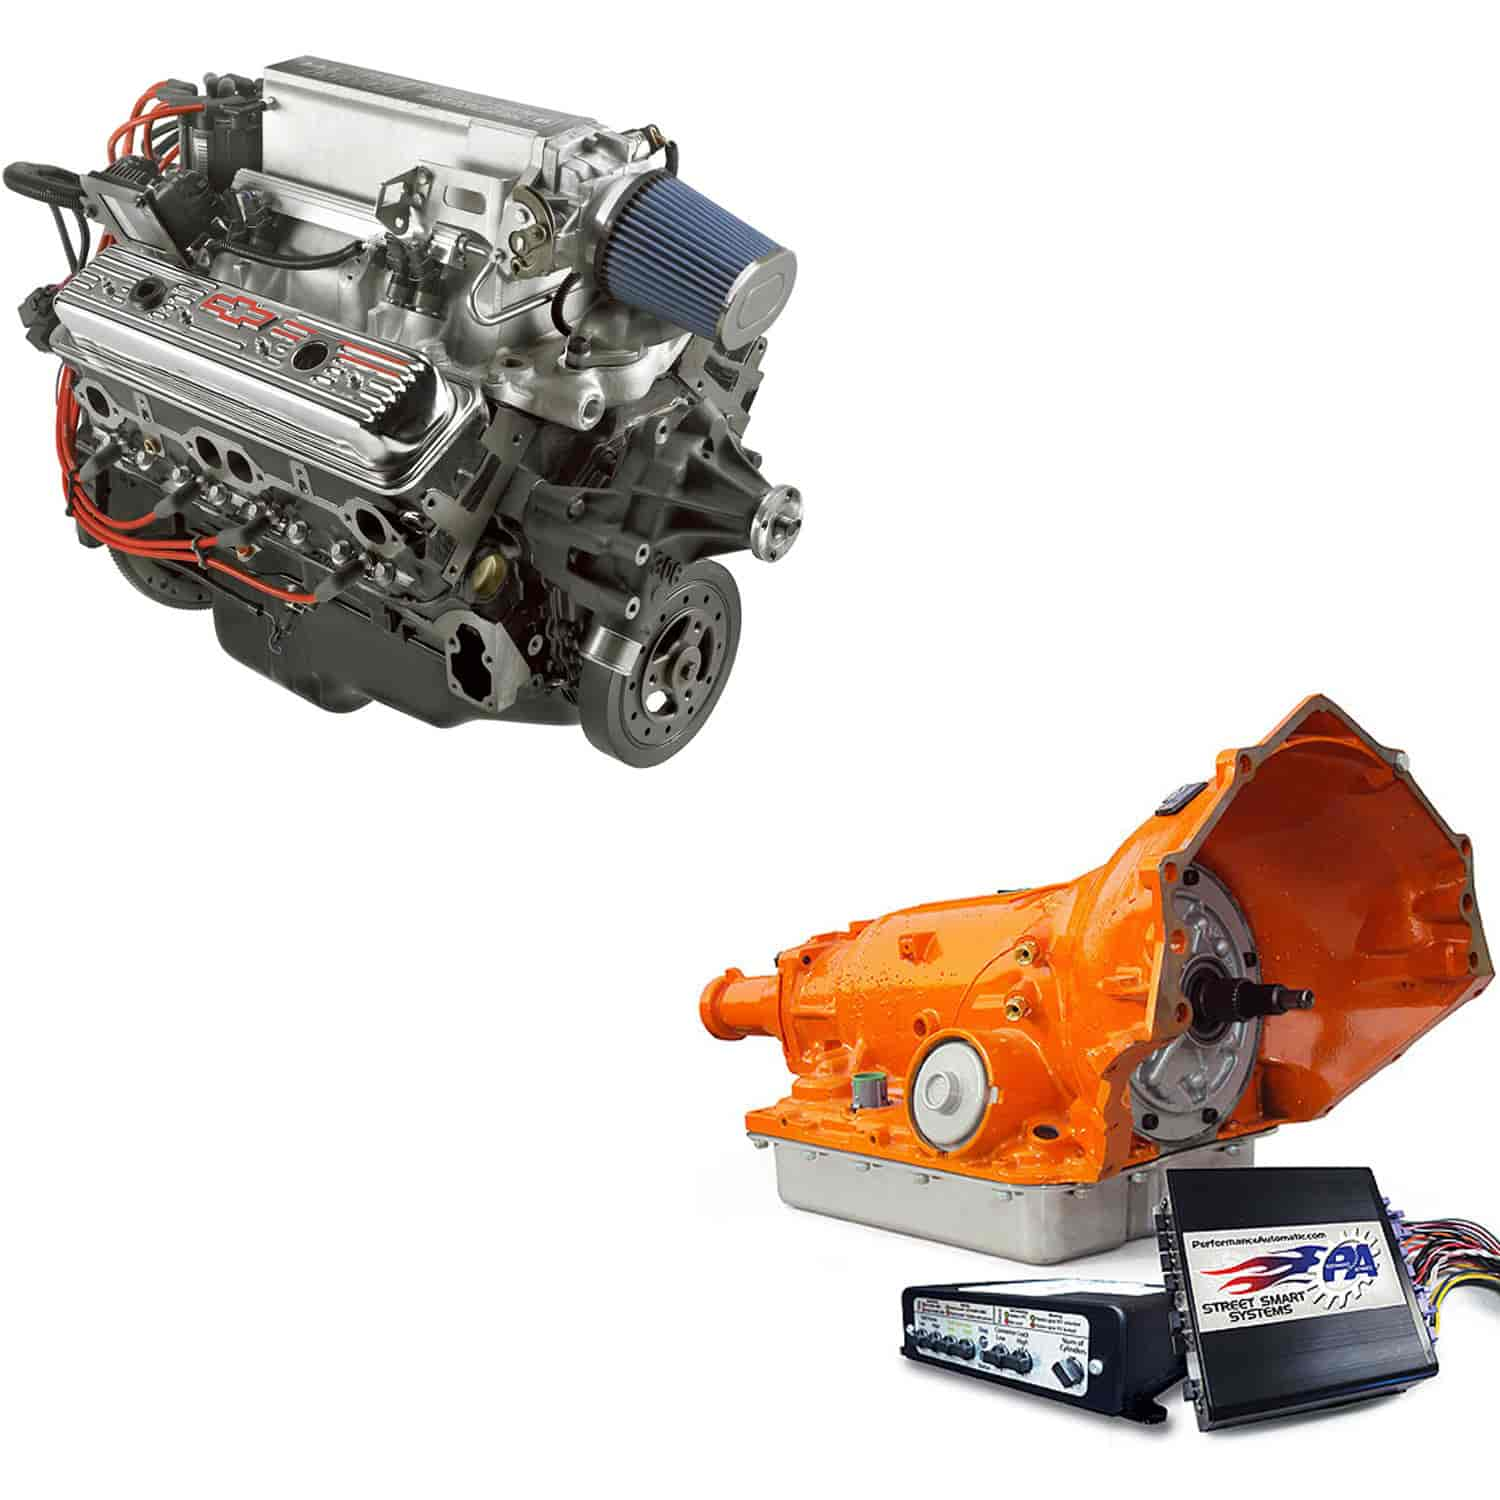 hight resolution of chevrolet performance ram jet 350 engine and 4l60e trans kit